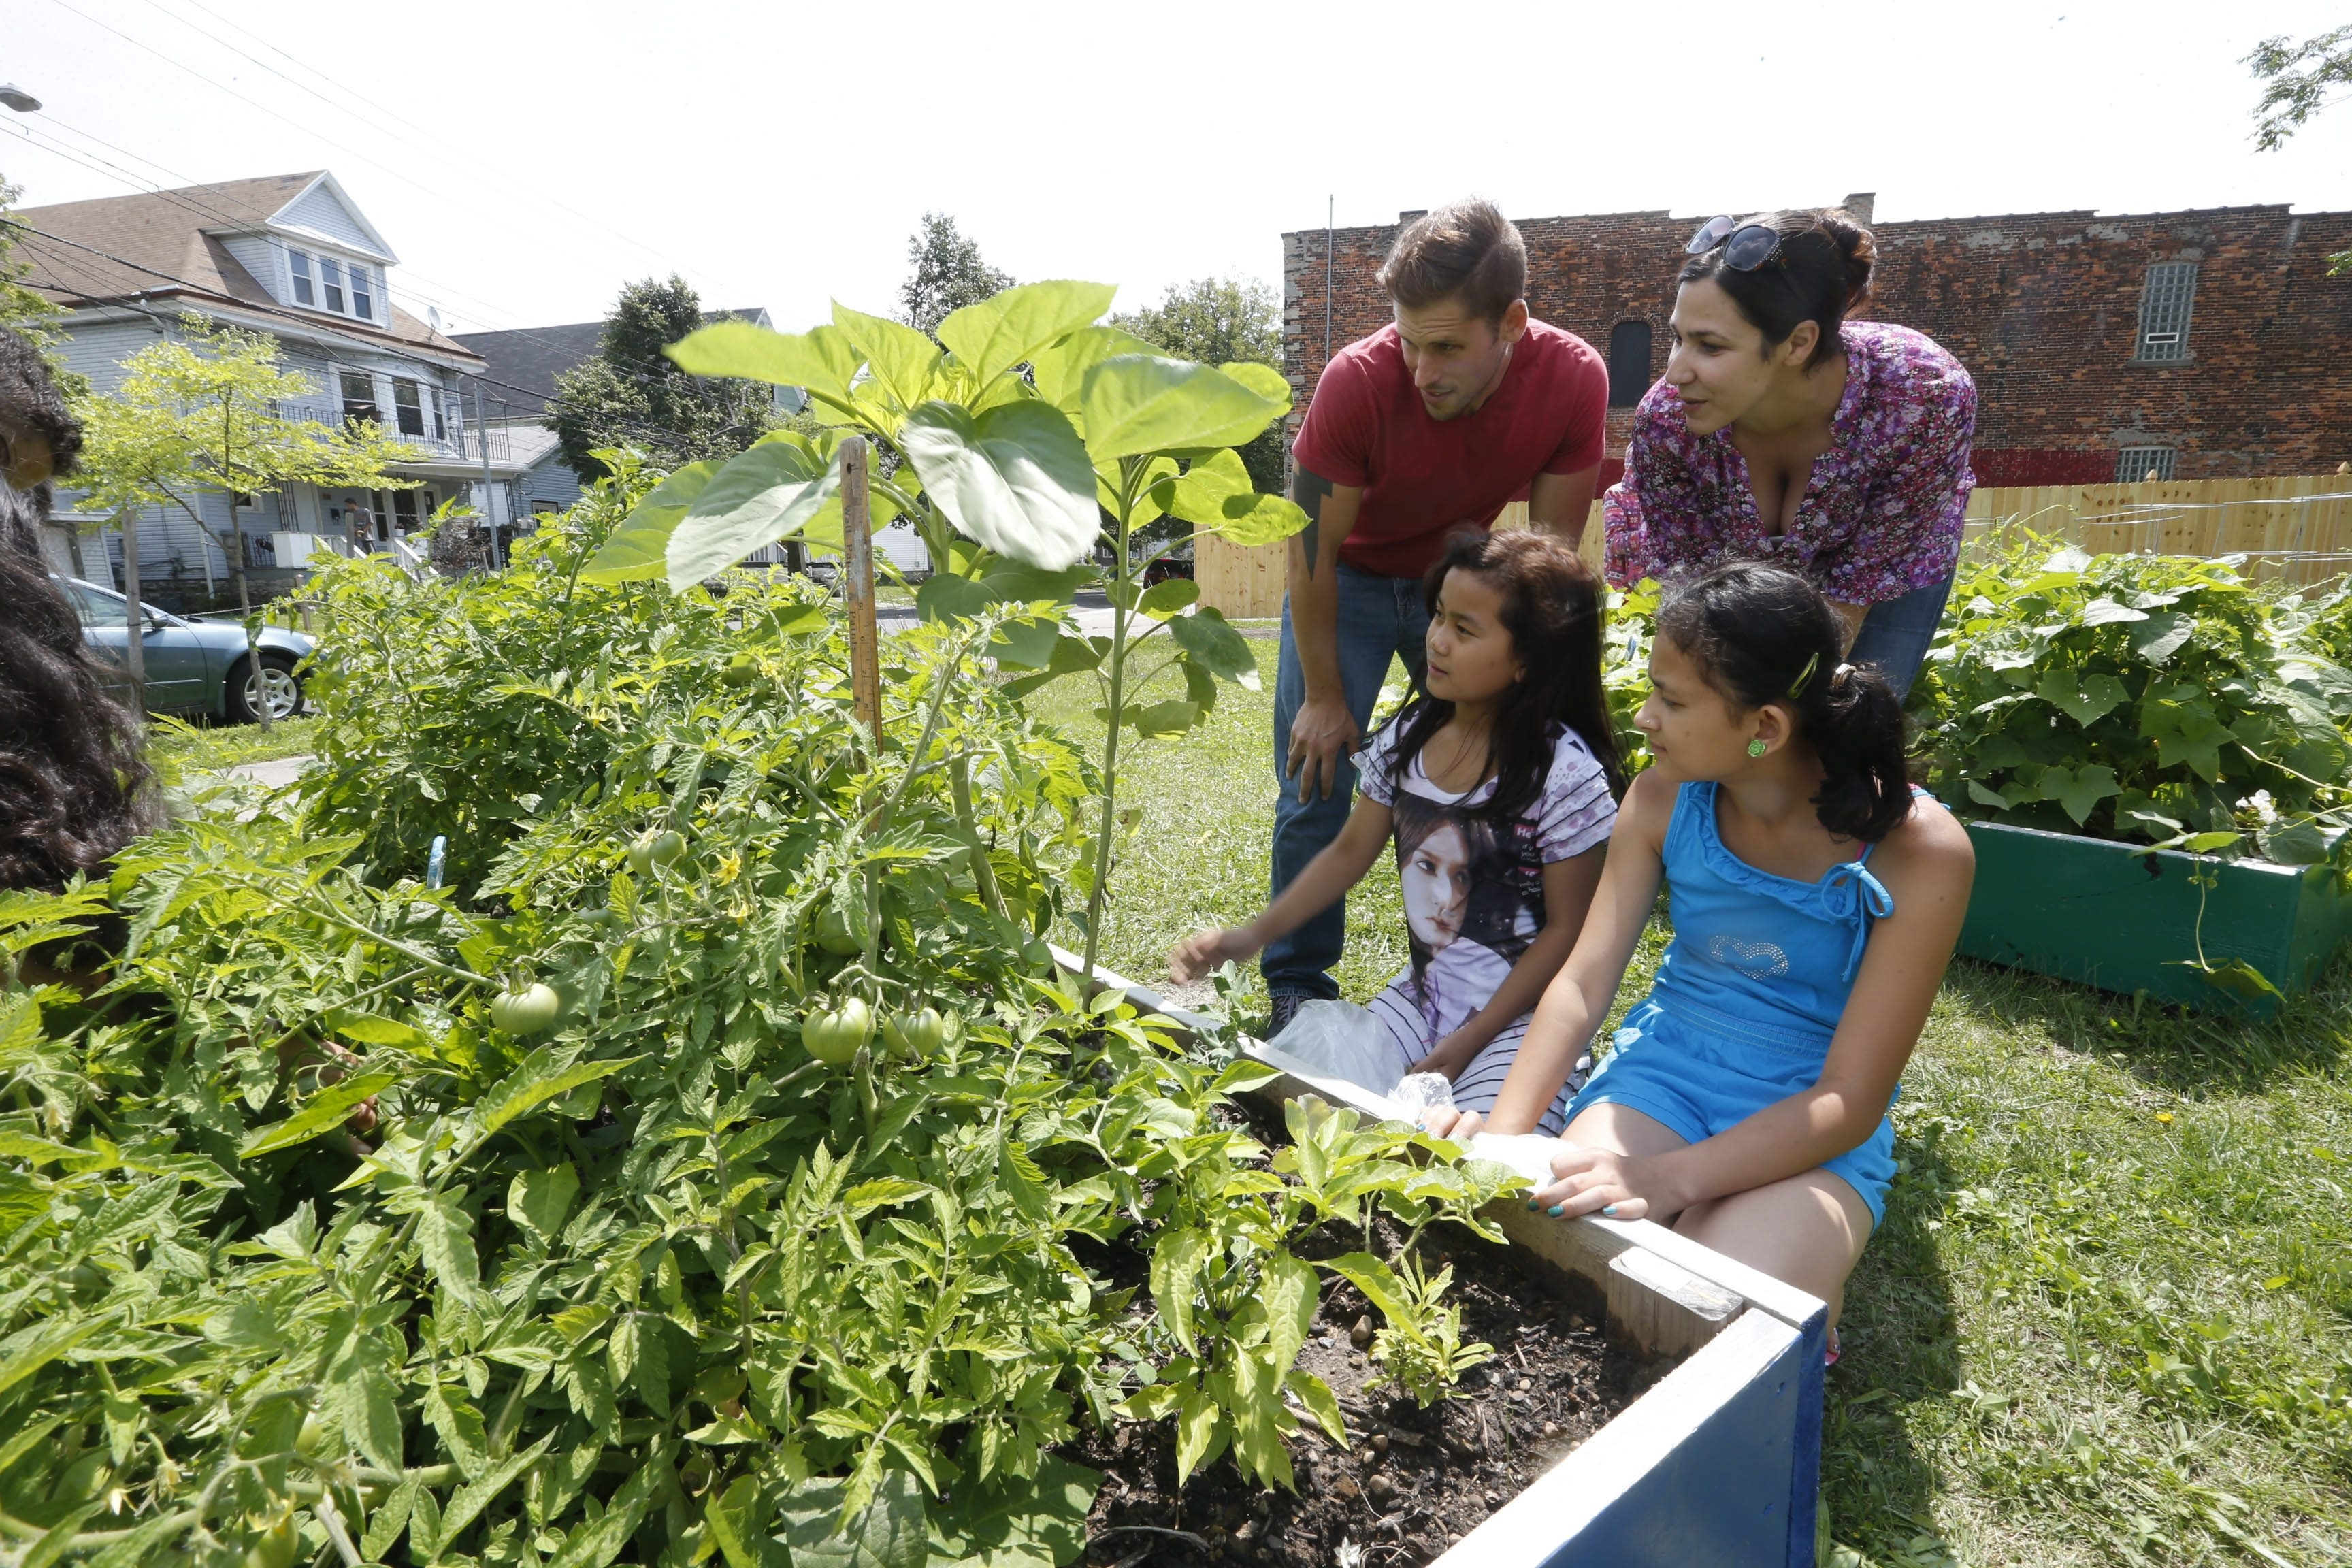 Derek Nichols and Melissa Fratello, both with Grassroots Gardens, check the progress of the School 18 garden with Hser Wah, 11, front left, and Reya Chhetri, 11.